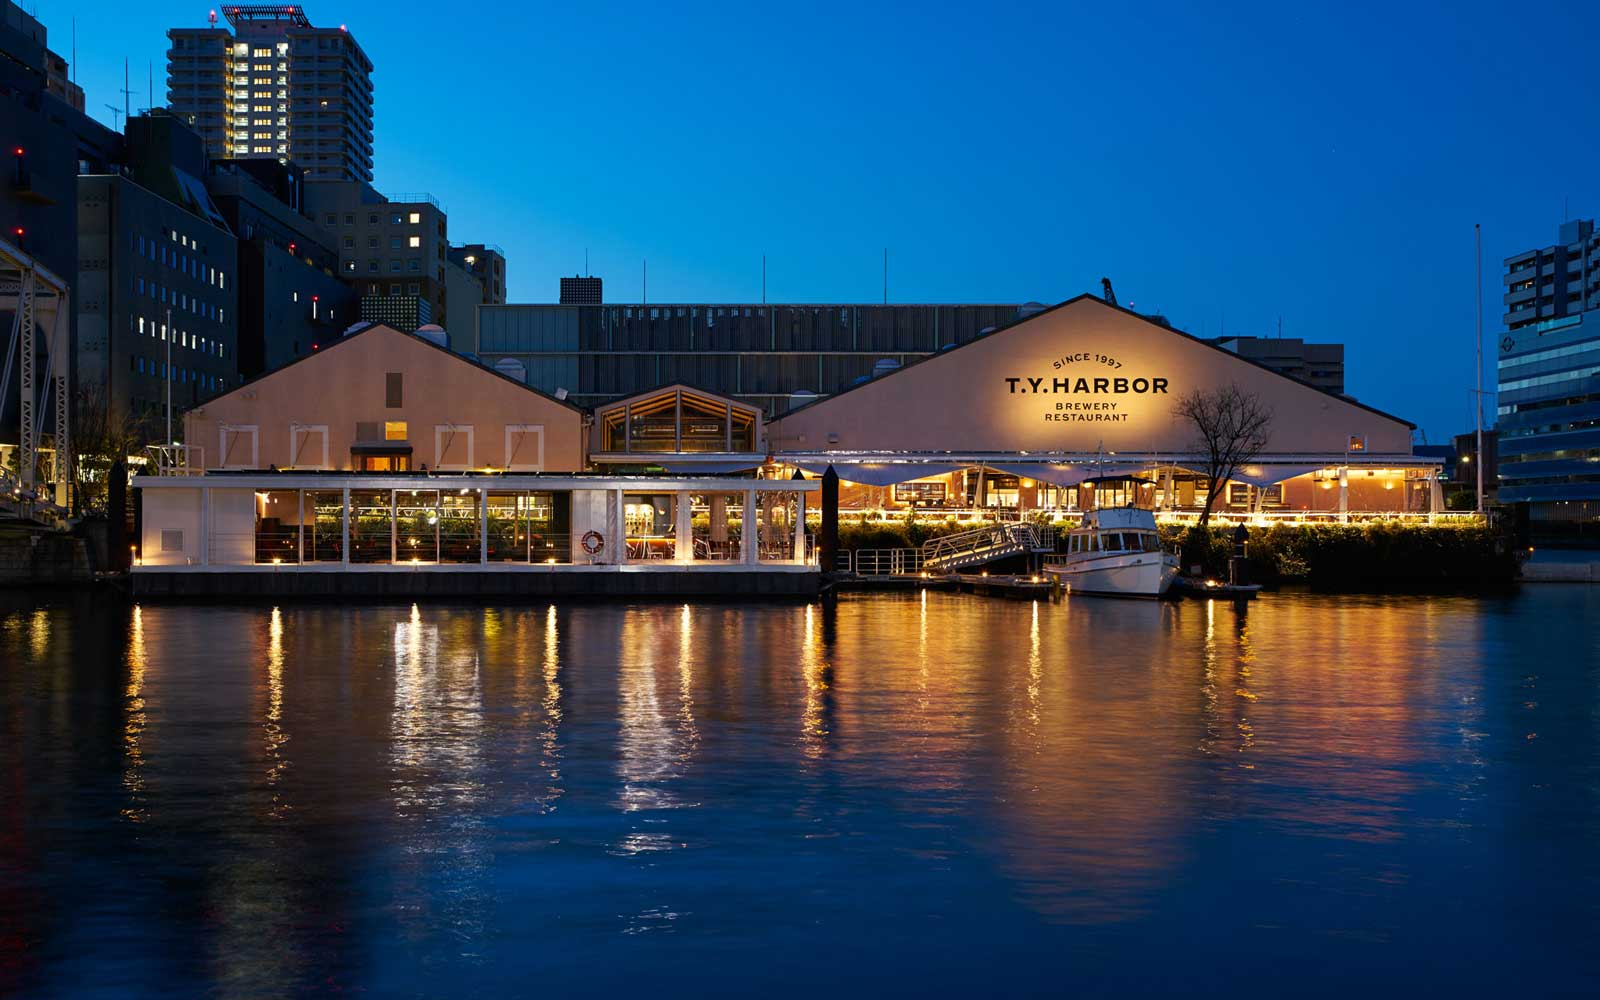 TY Harbor Brewery and Restaurant Japan